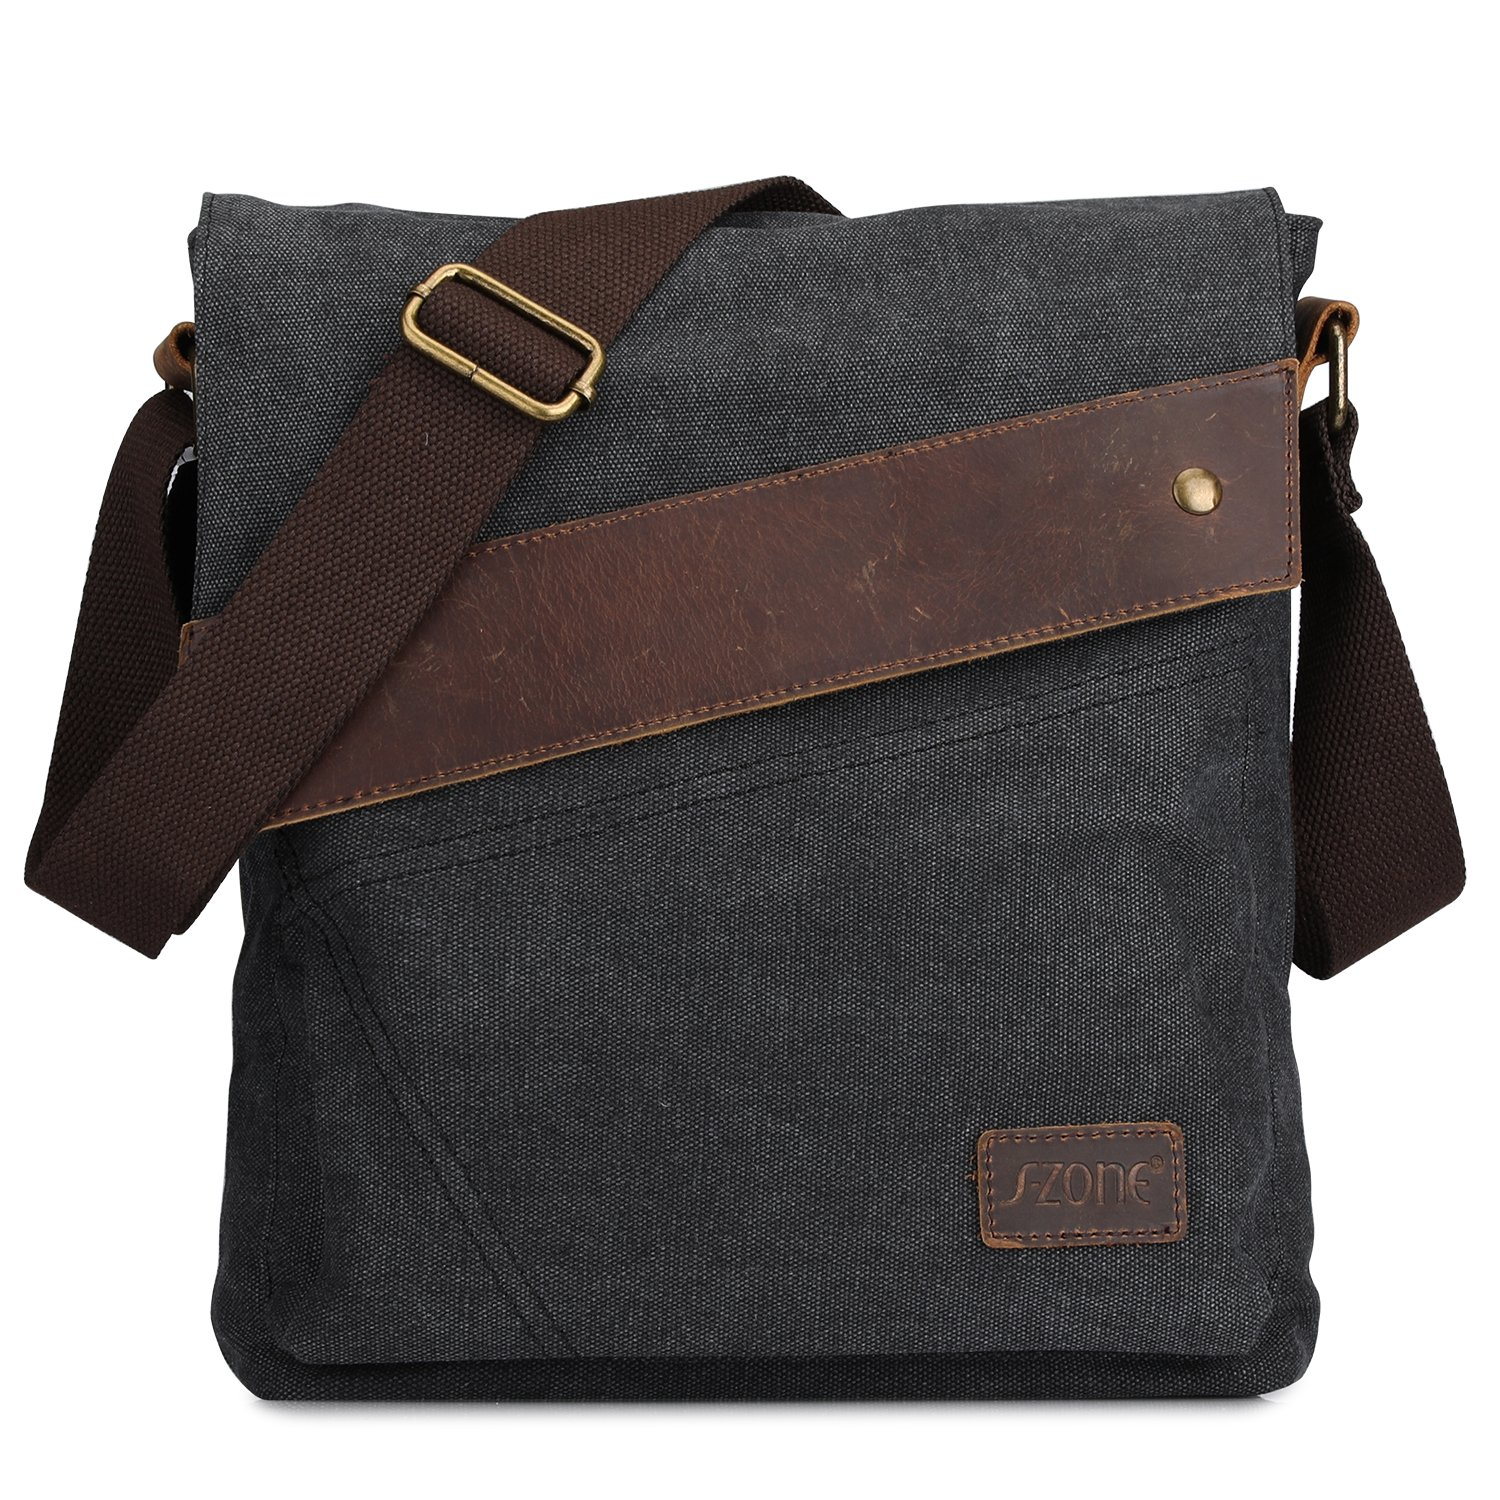 S-ZONE Vintage Lightweight Small Canvas Messenger Bag Travel Shoulder Crossbody Purse Dark (Gray) by S-ZONE (Image #1)